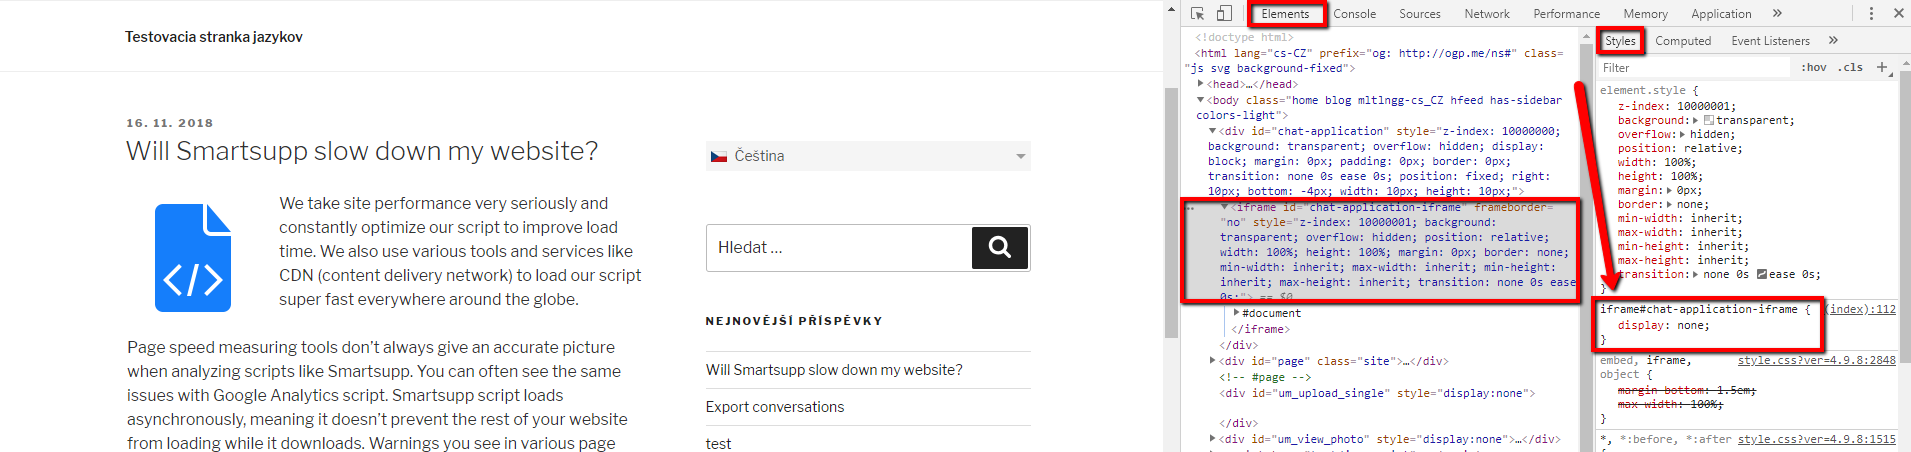 Why can't I see the chat on my website? - Smartsupp